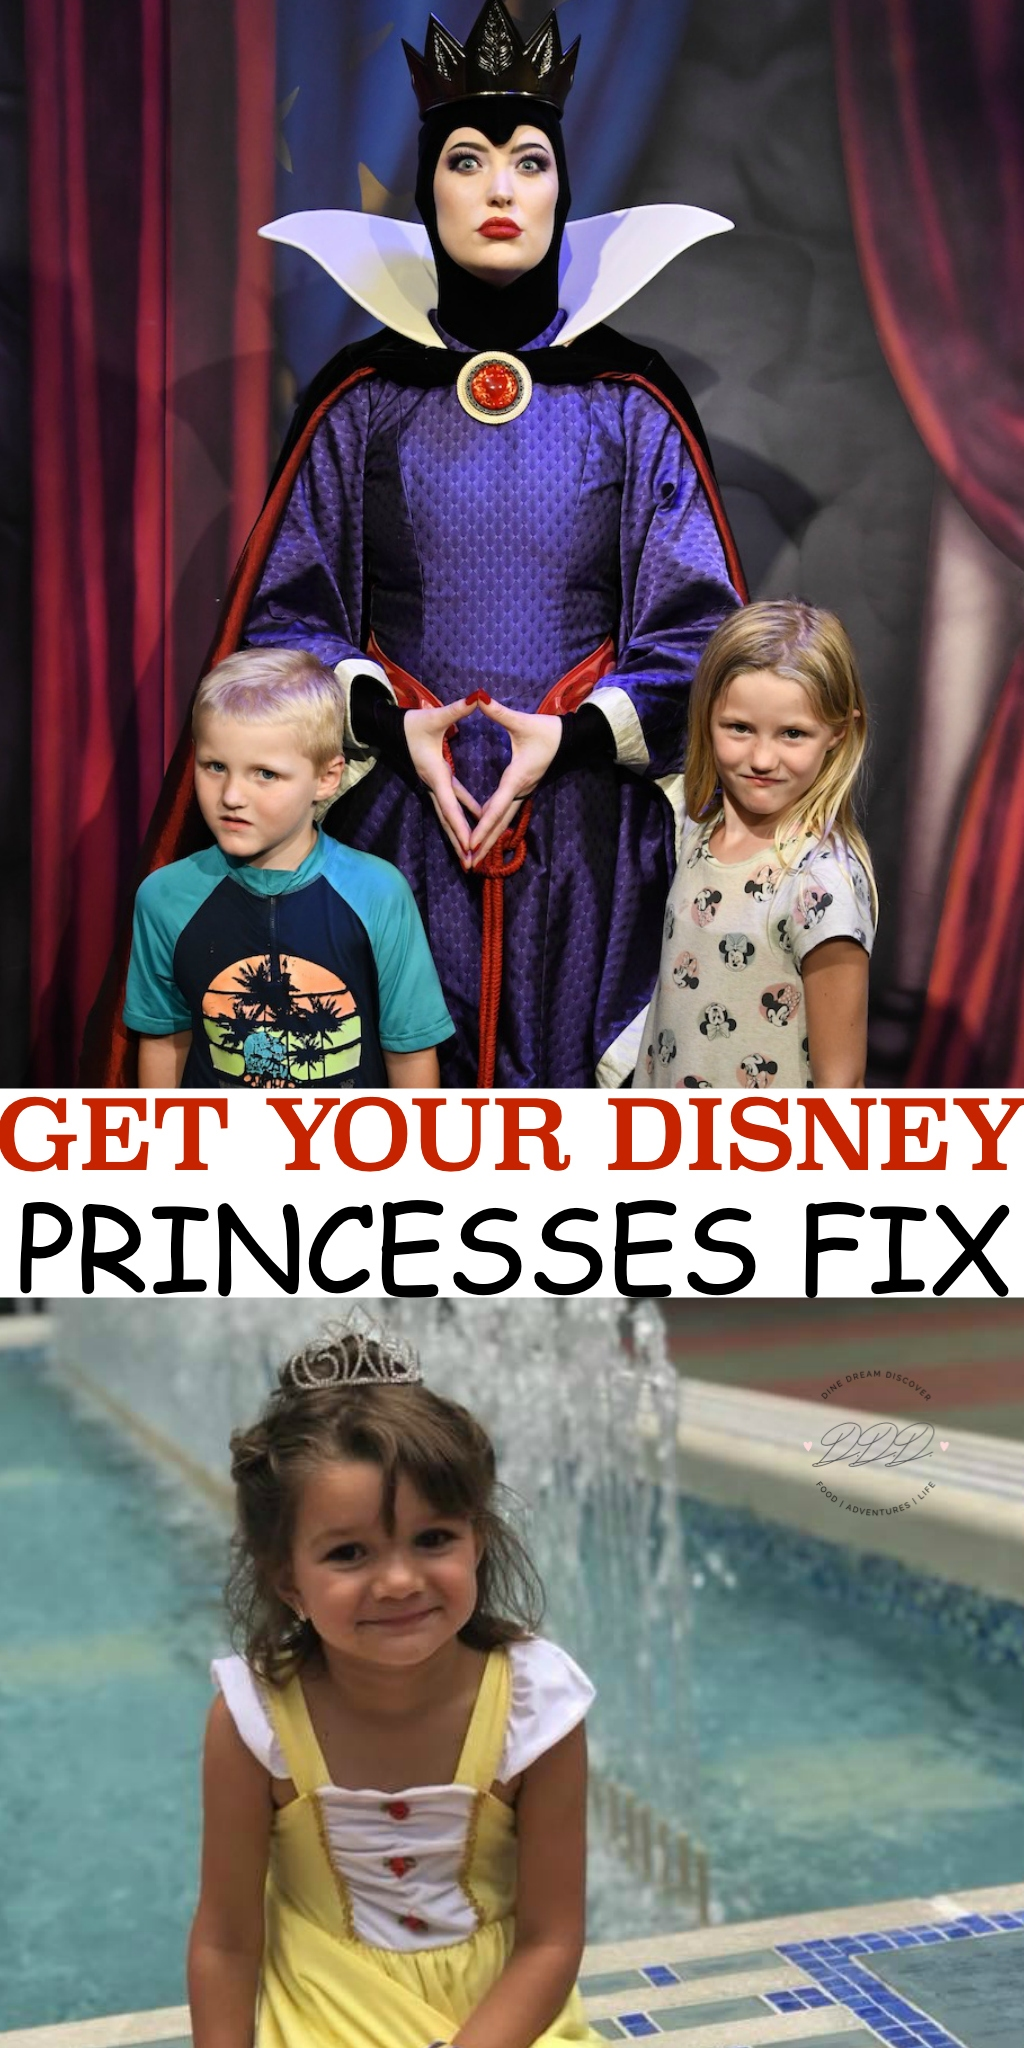 If Disney princesses are what it is all about for you, There are so many ways you can get your princess fix all throughout your <a href=